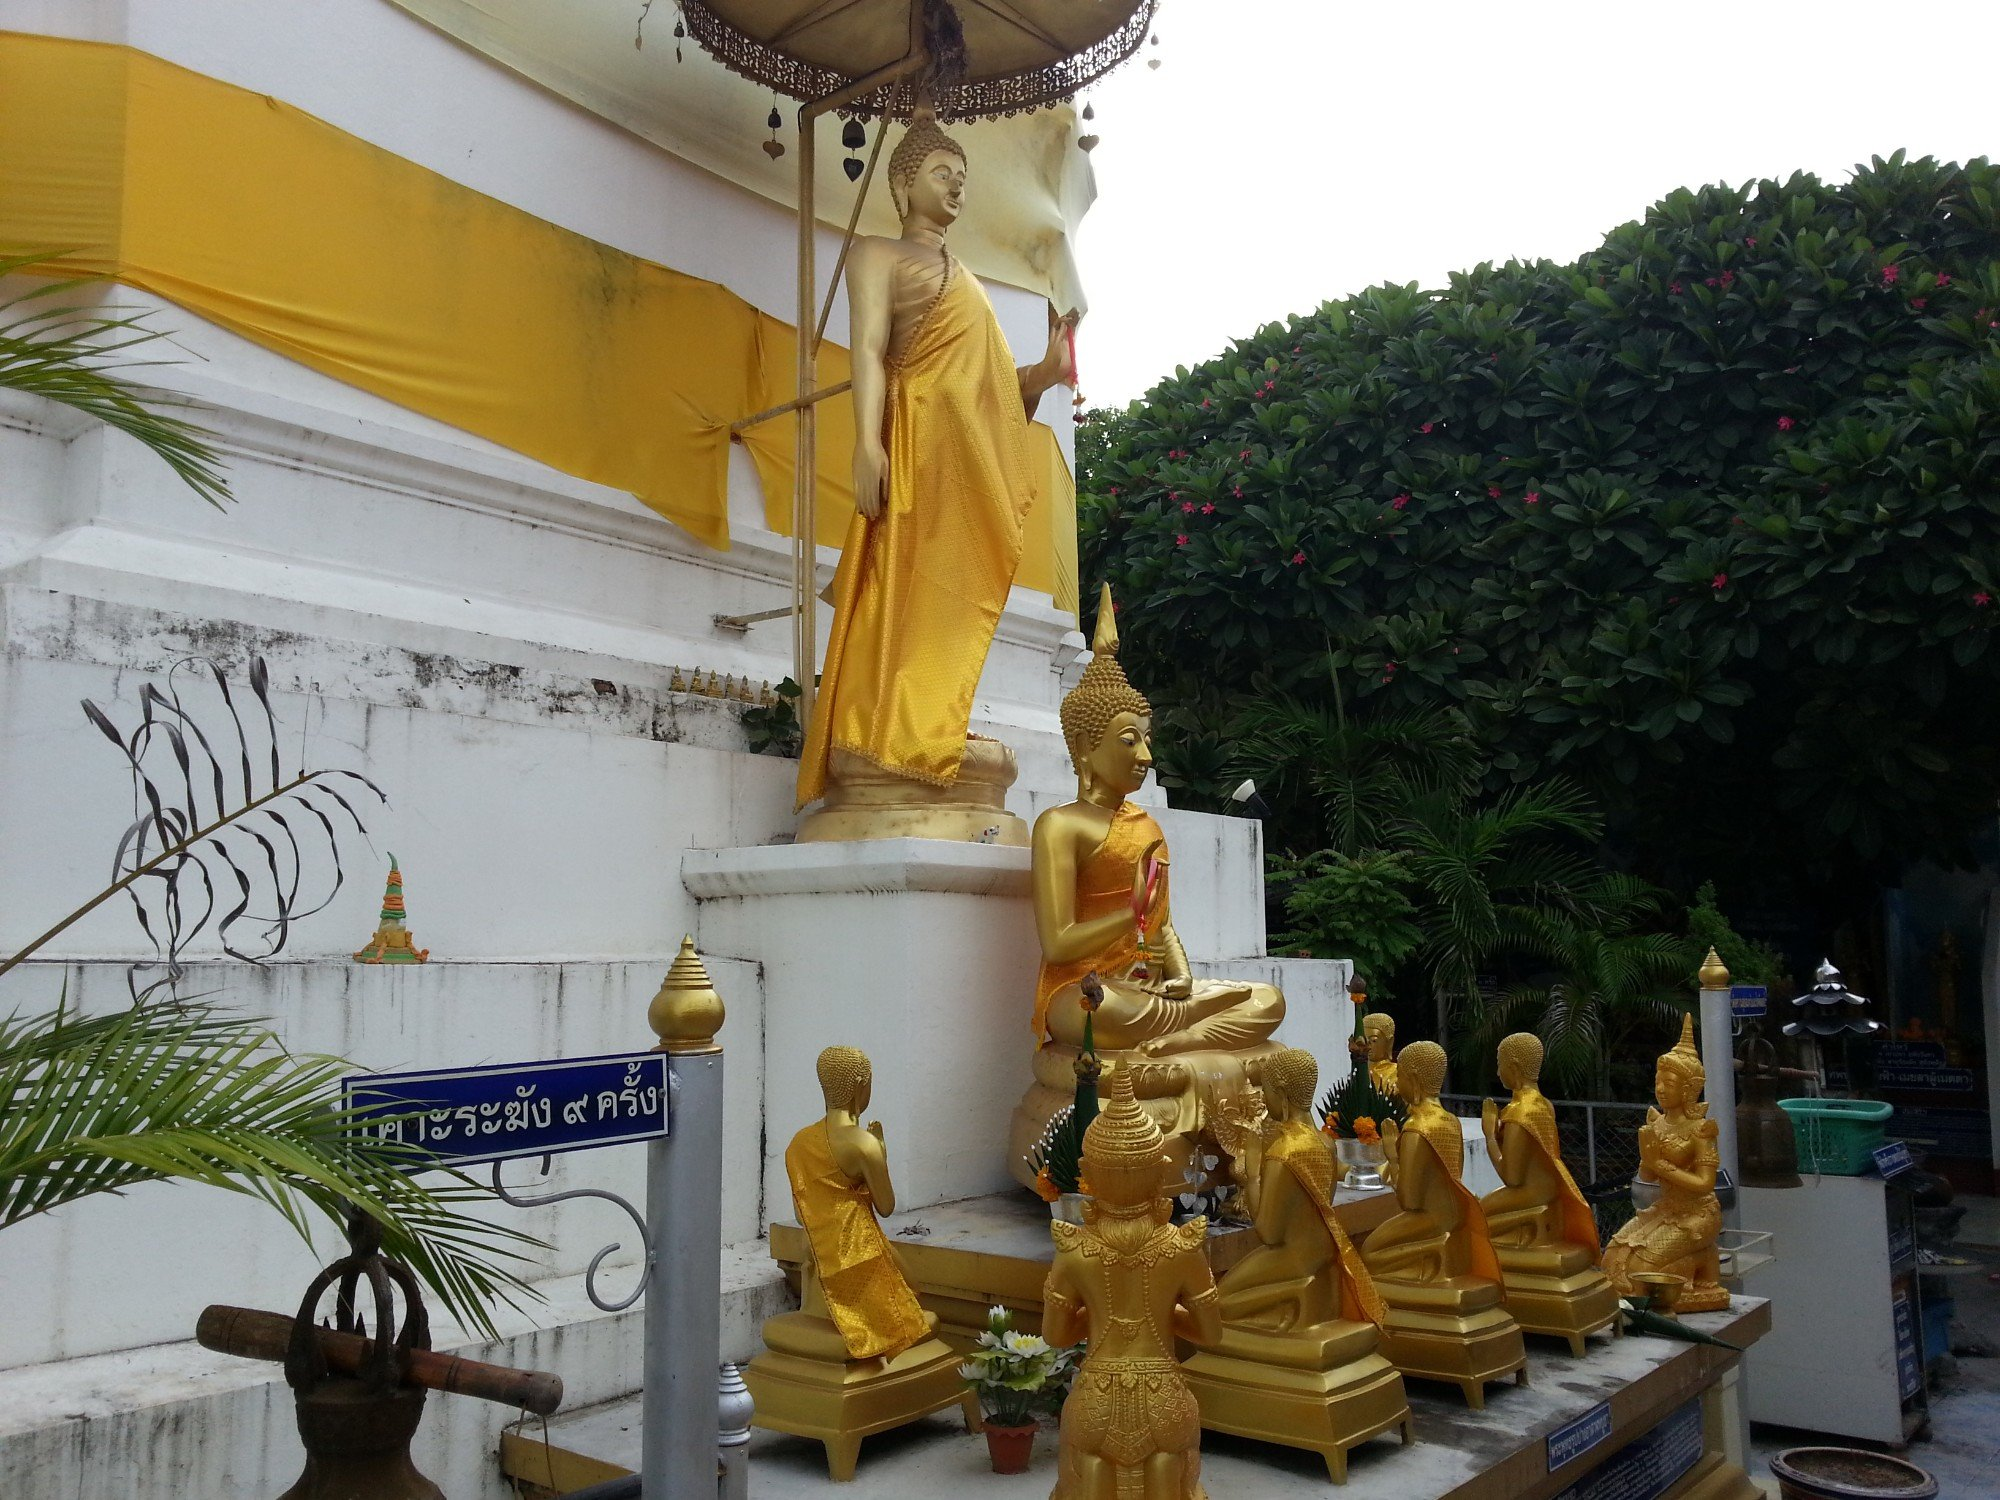 Statues at the base of the chedi at Wat Pratu Ton Phueng